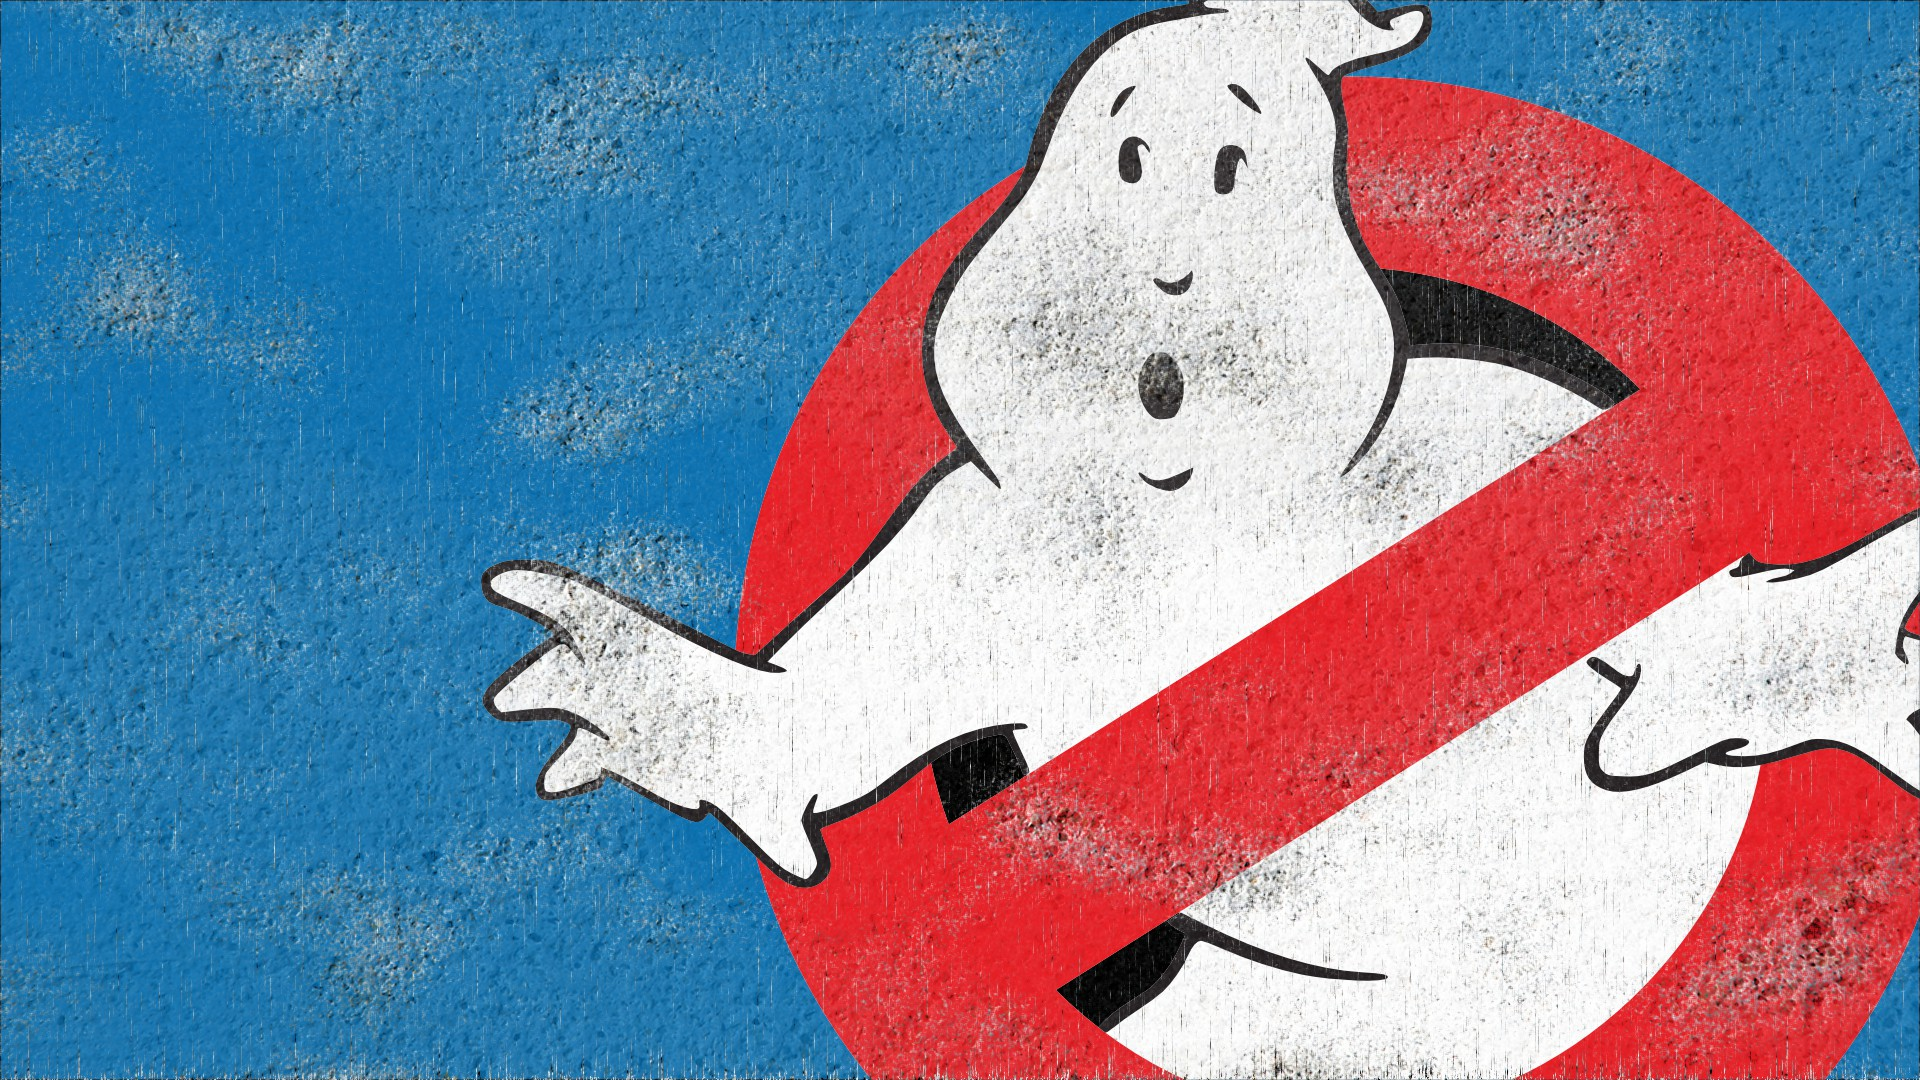 Ghostbusters 3 hd wallpapers free download - Ghostbusters wallpaper ...